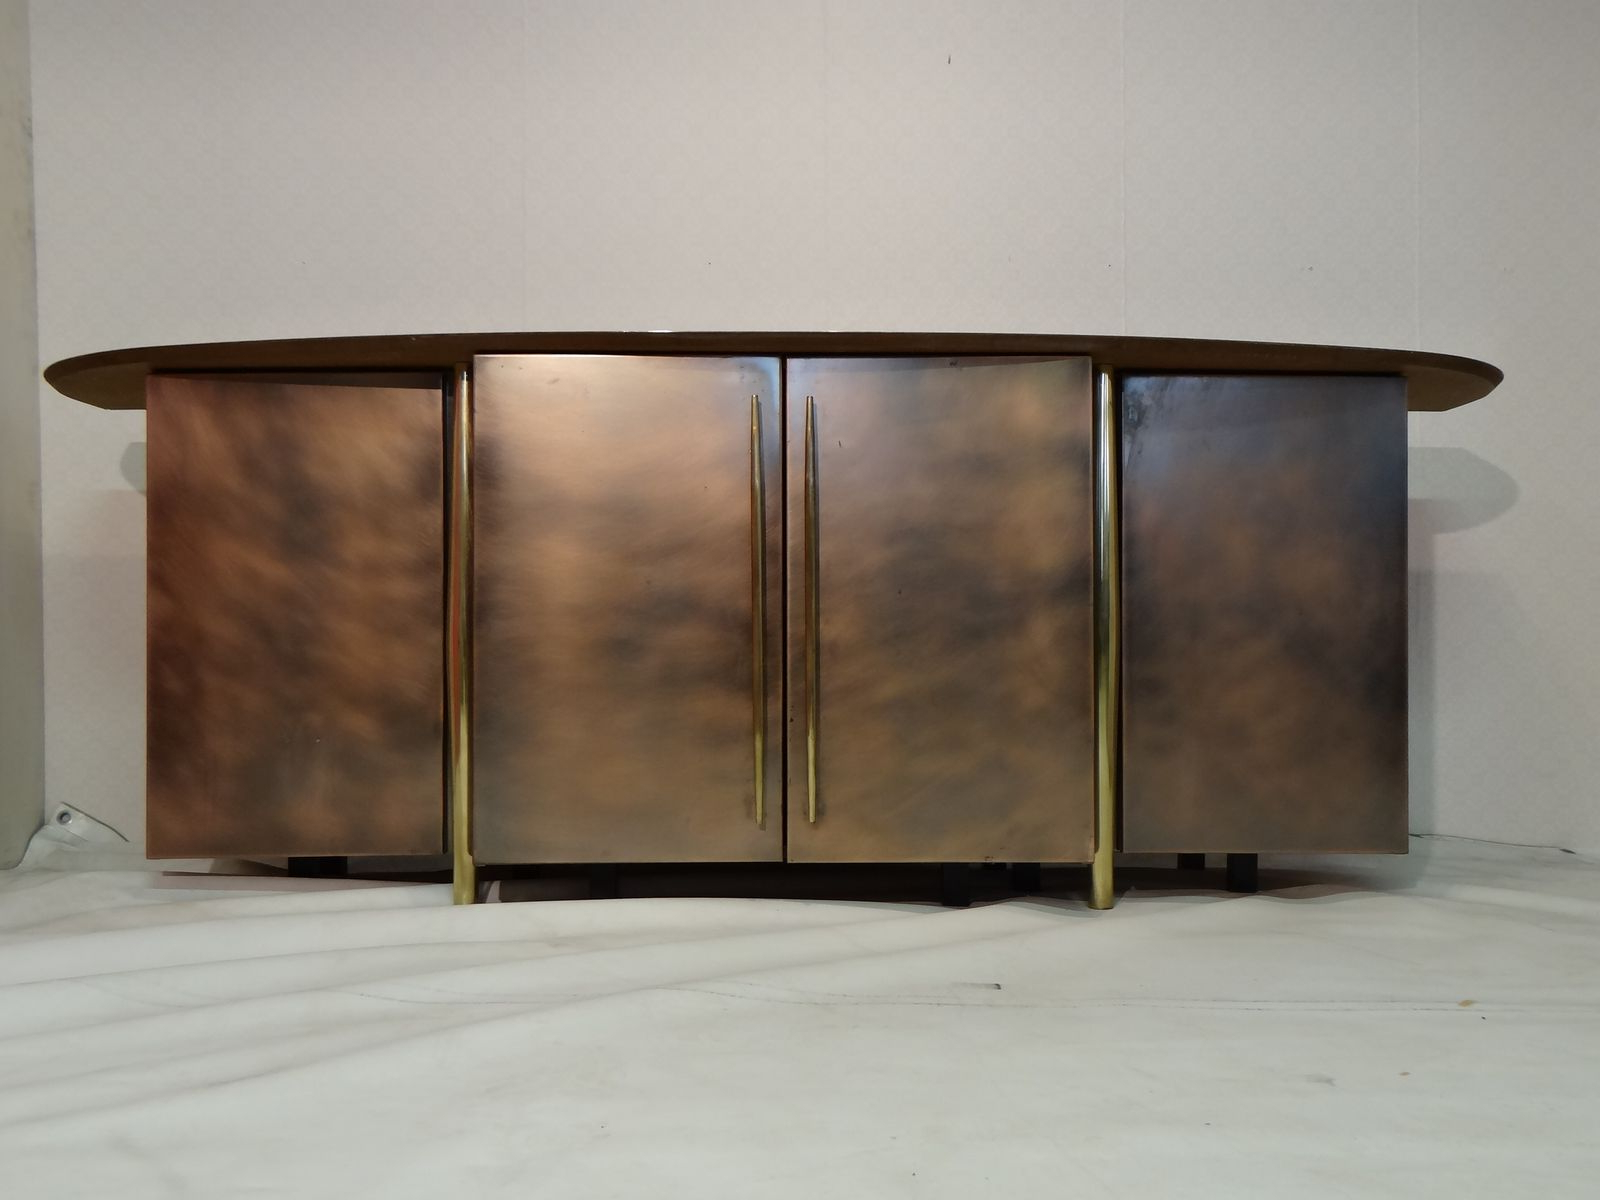 Vintage Brass Sideboard From Belgo Chrom For Sale At Pamono With Current Aged Brass Sideboards (View 13 of 20)